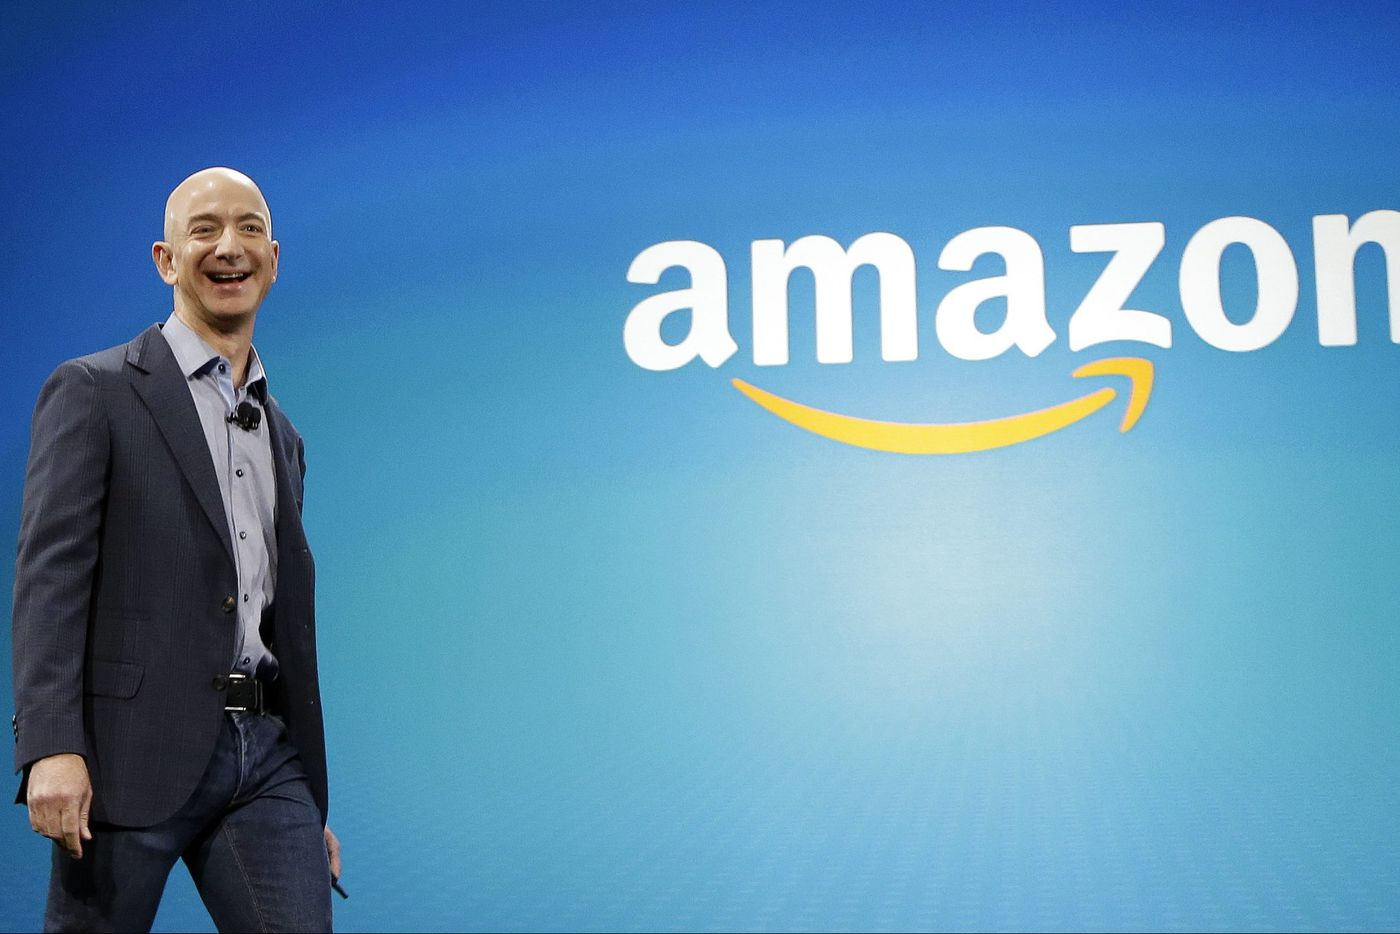 Kshama Sawant responds to Jeff Bezos' $2 billion charitable fund